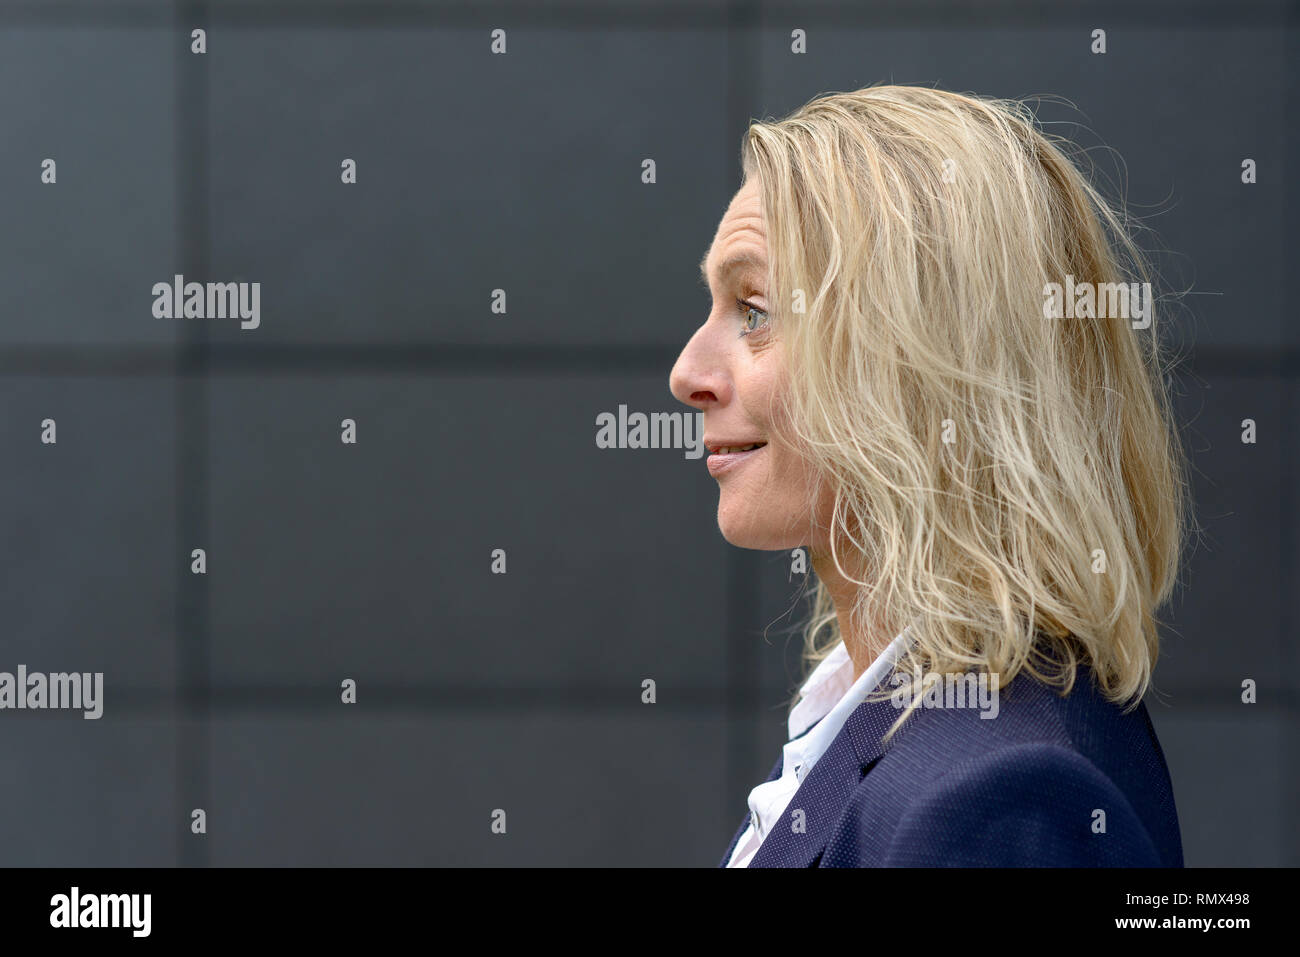 Profile head shot of a surprised blond woman with tousled hair smiling and raising her eyebrows with copy space on a dark grey wall - Stock Image